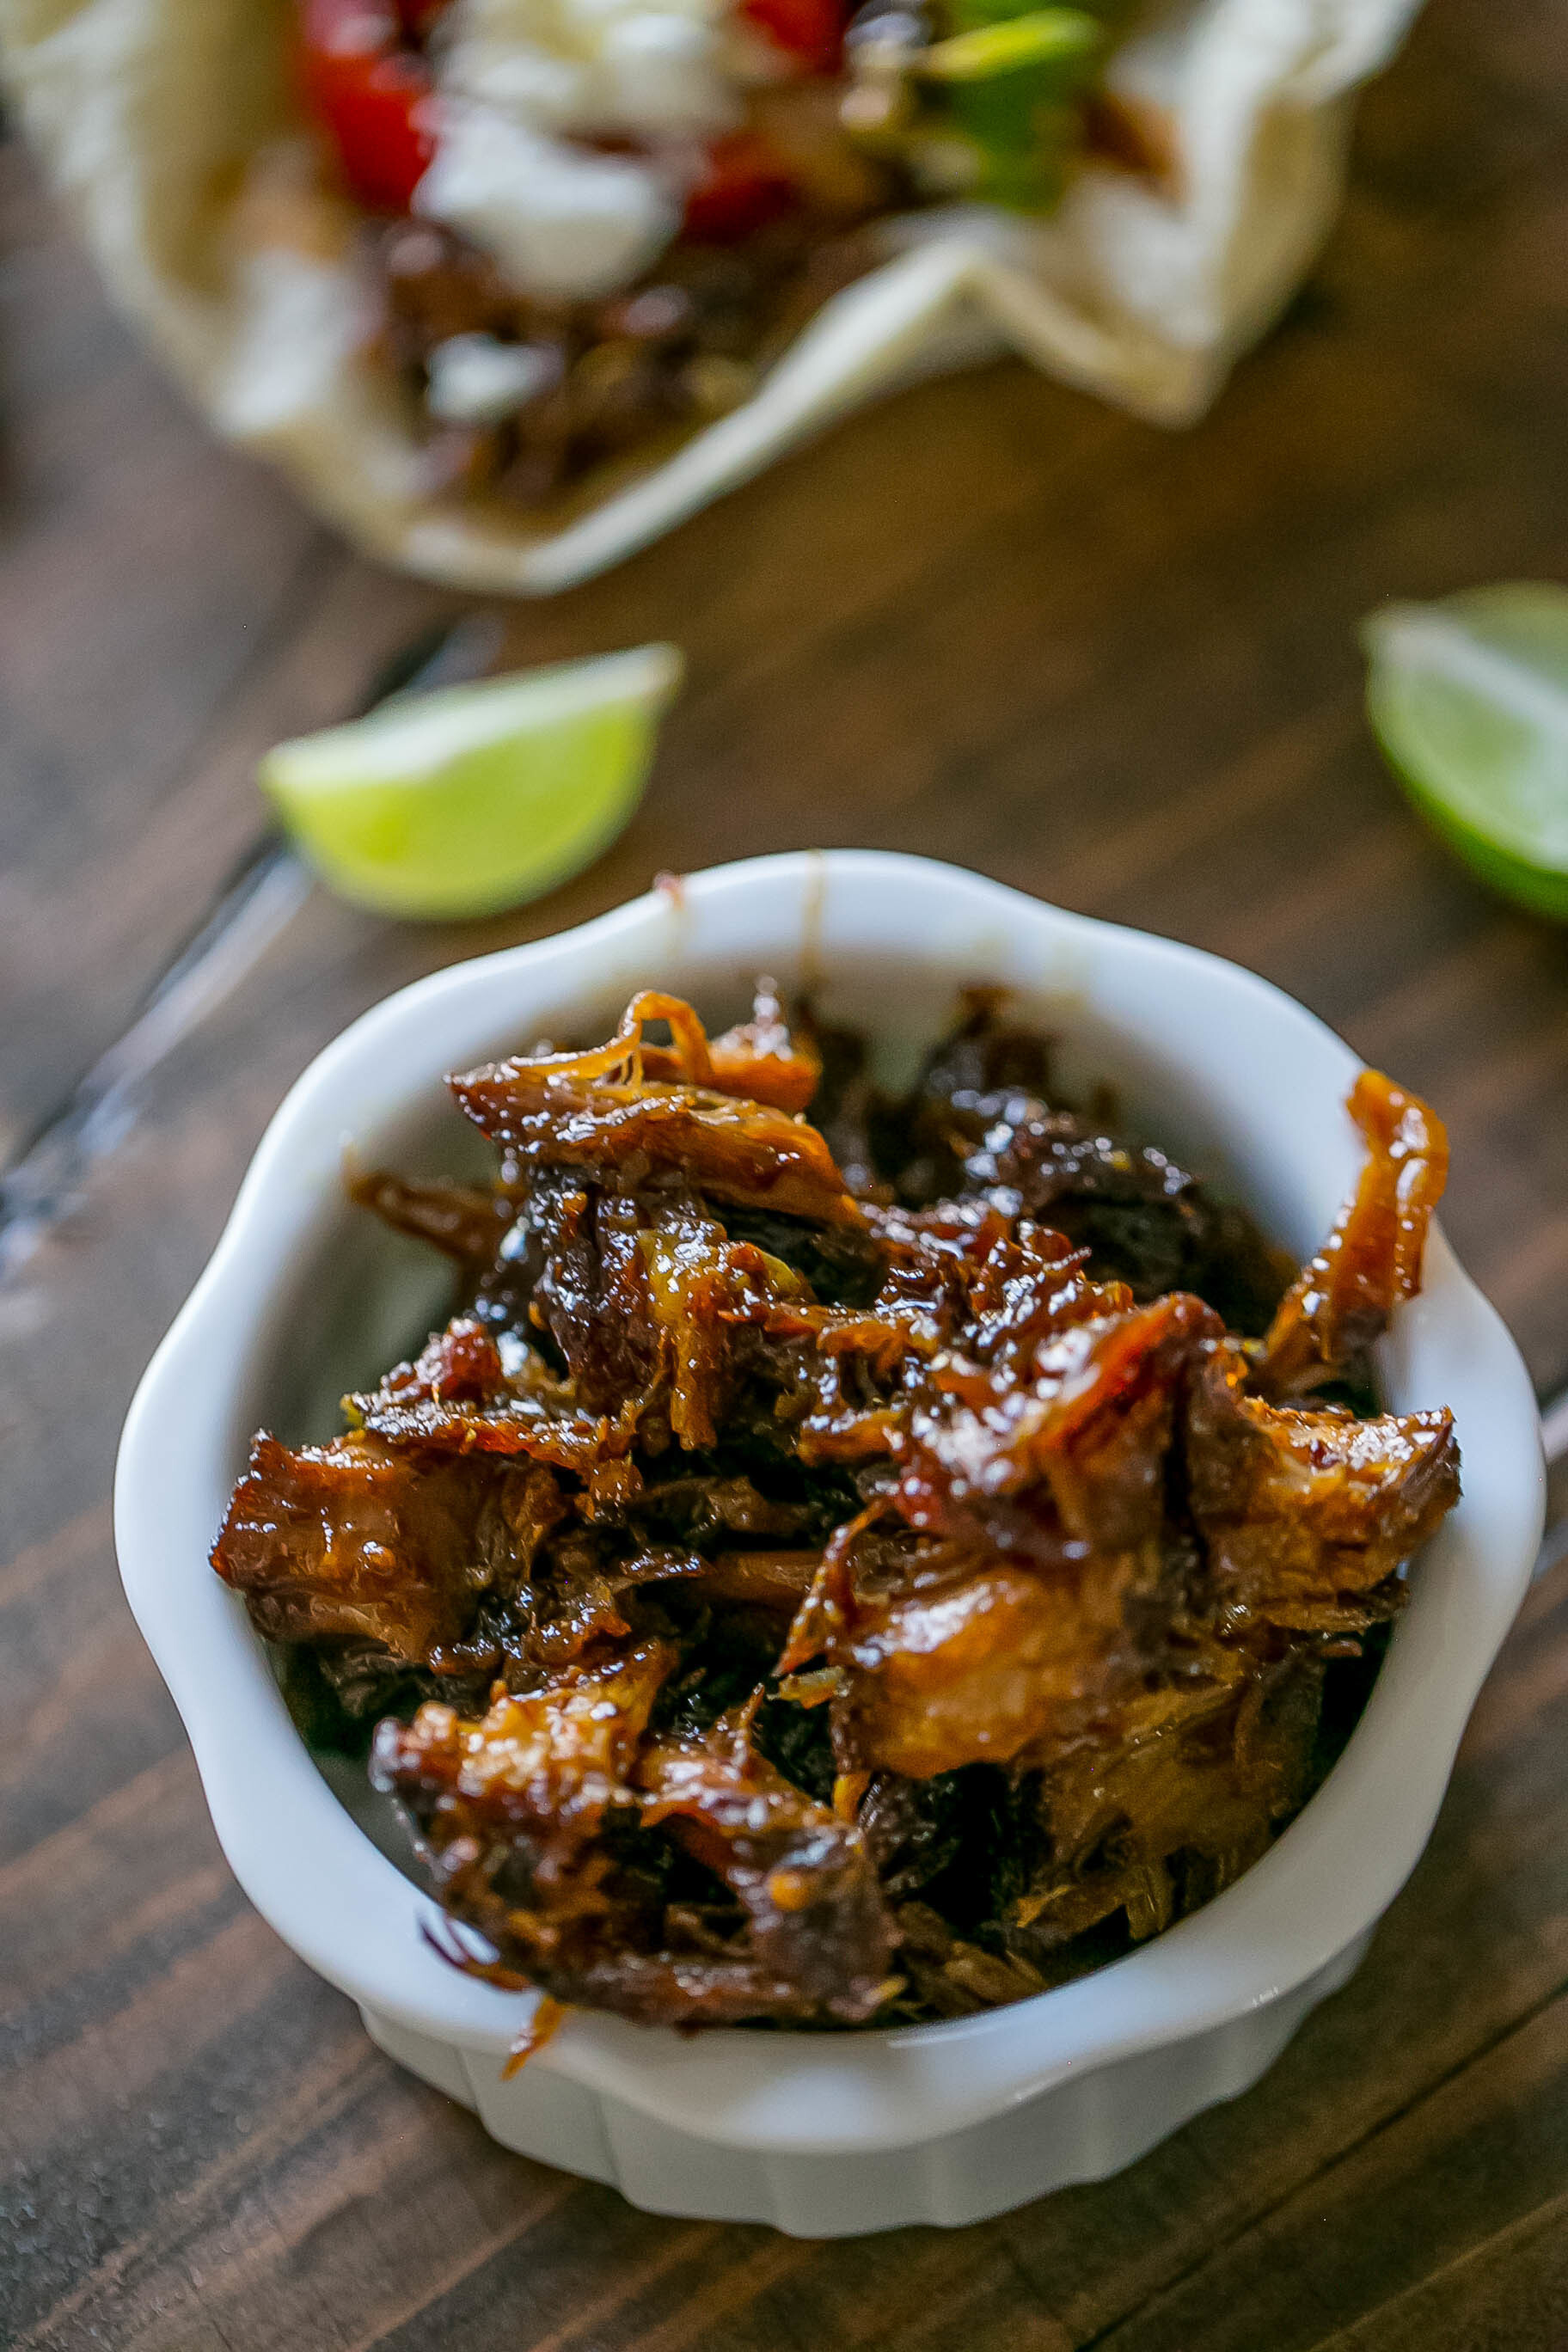 Tequila Habanero Braised Country Ribs